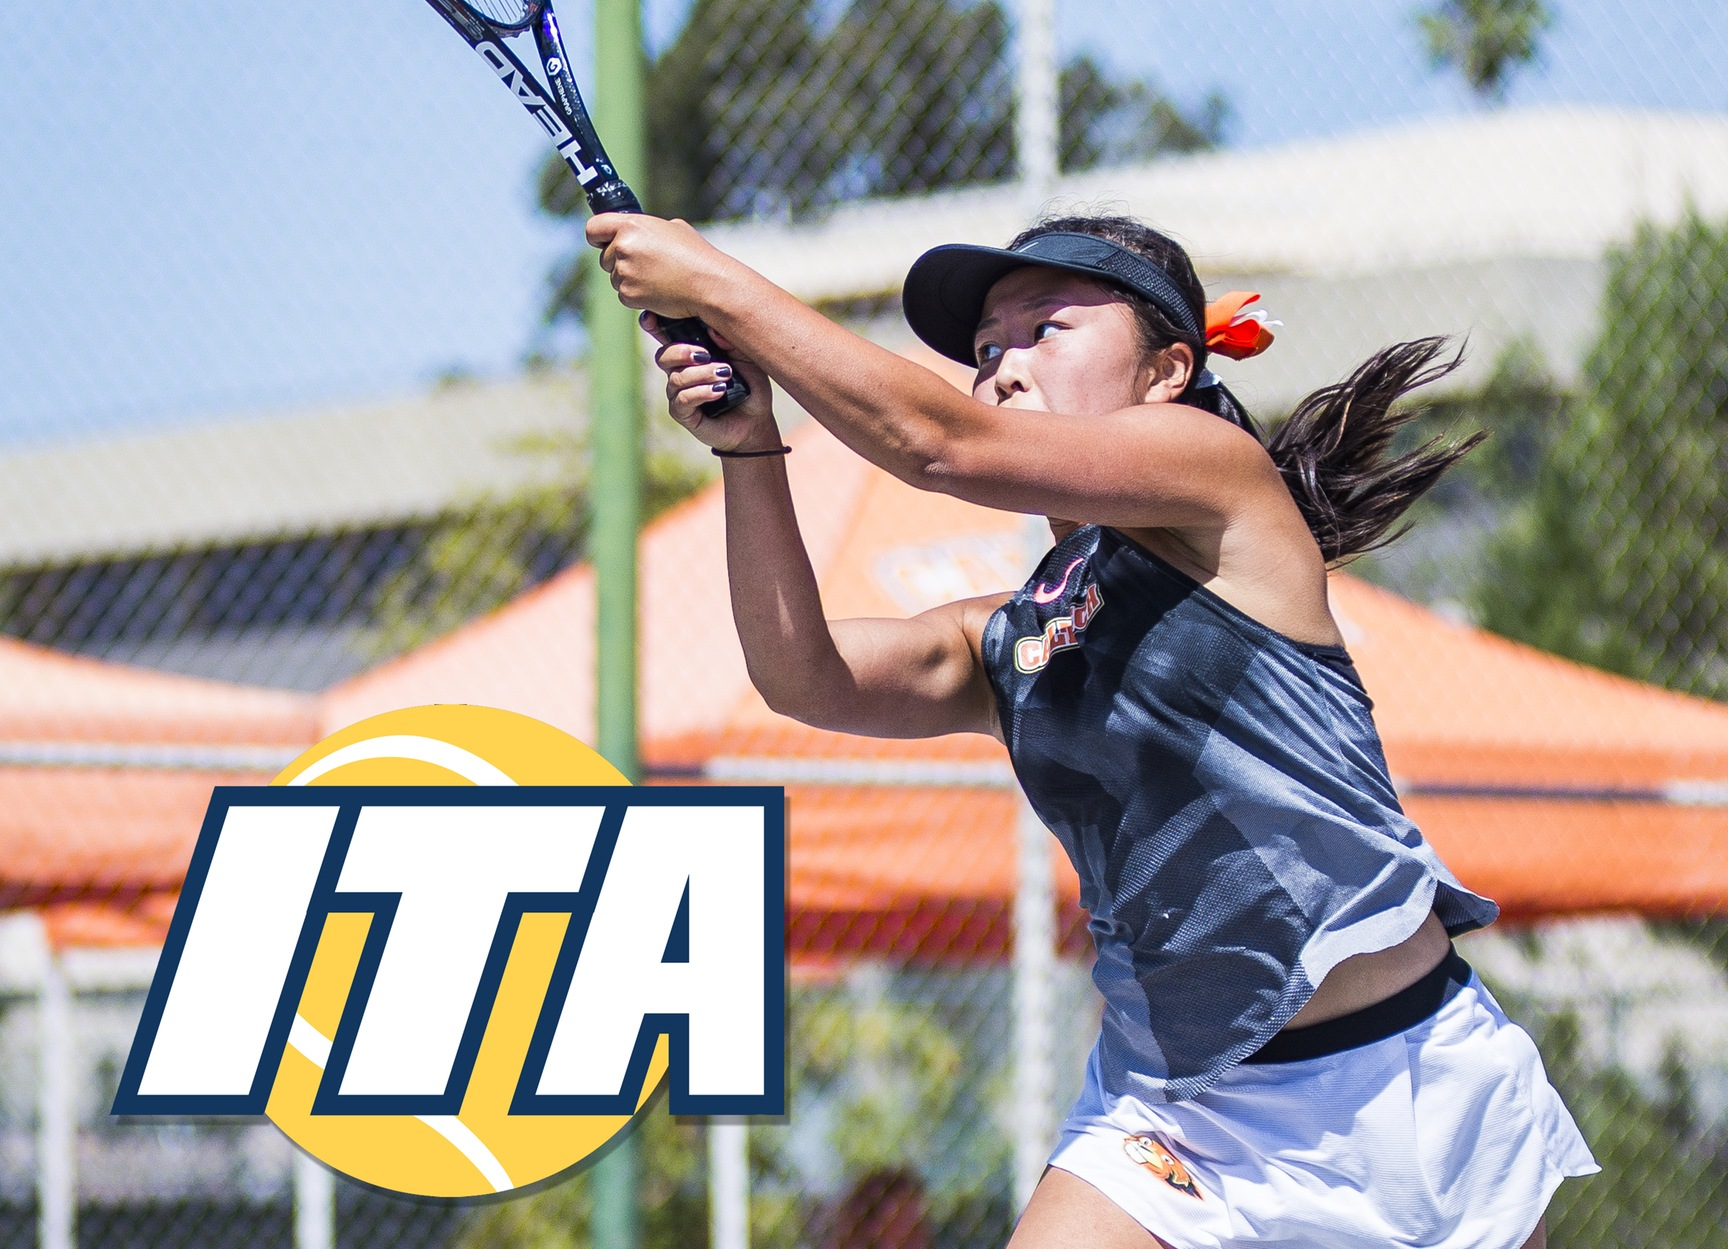 Women's Tennis Back to 20th in Latest ITA Rankings